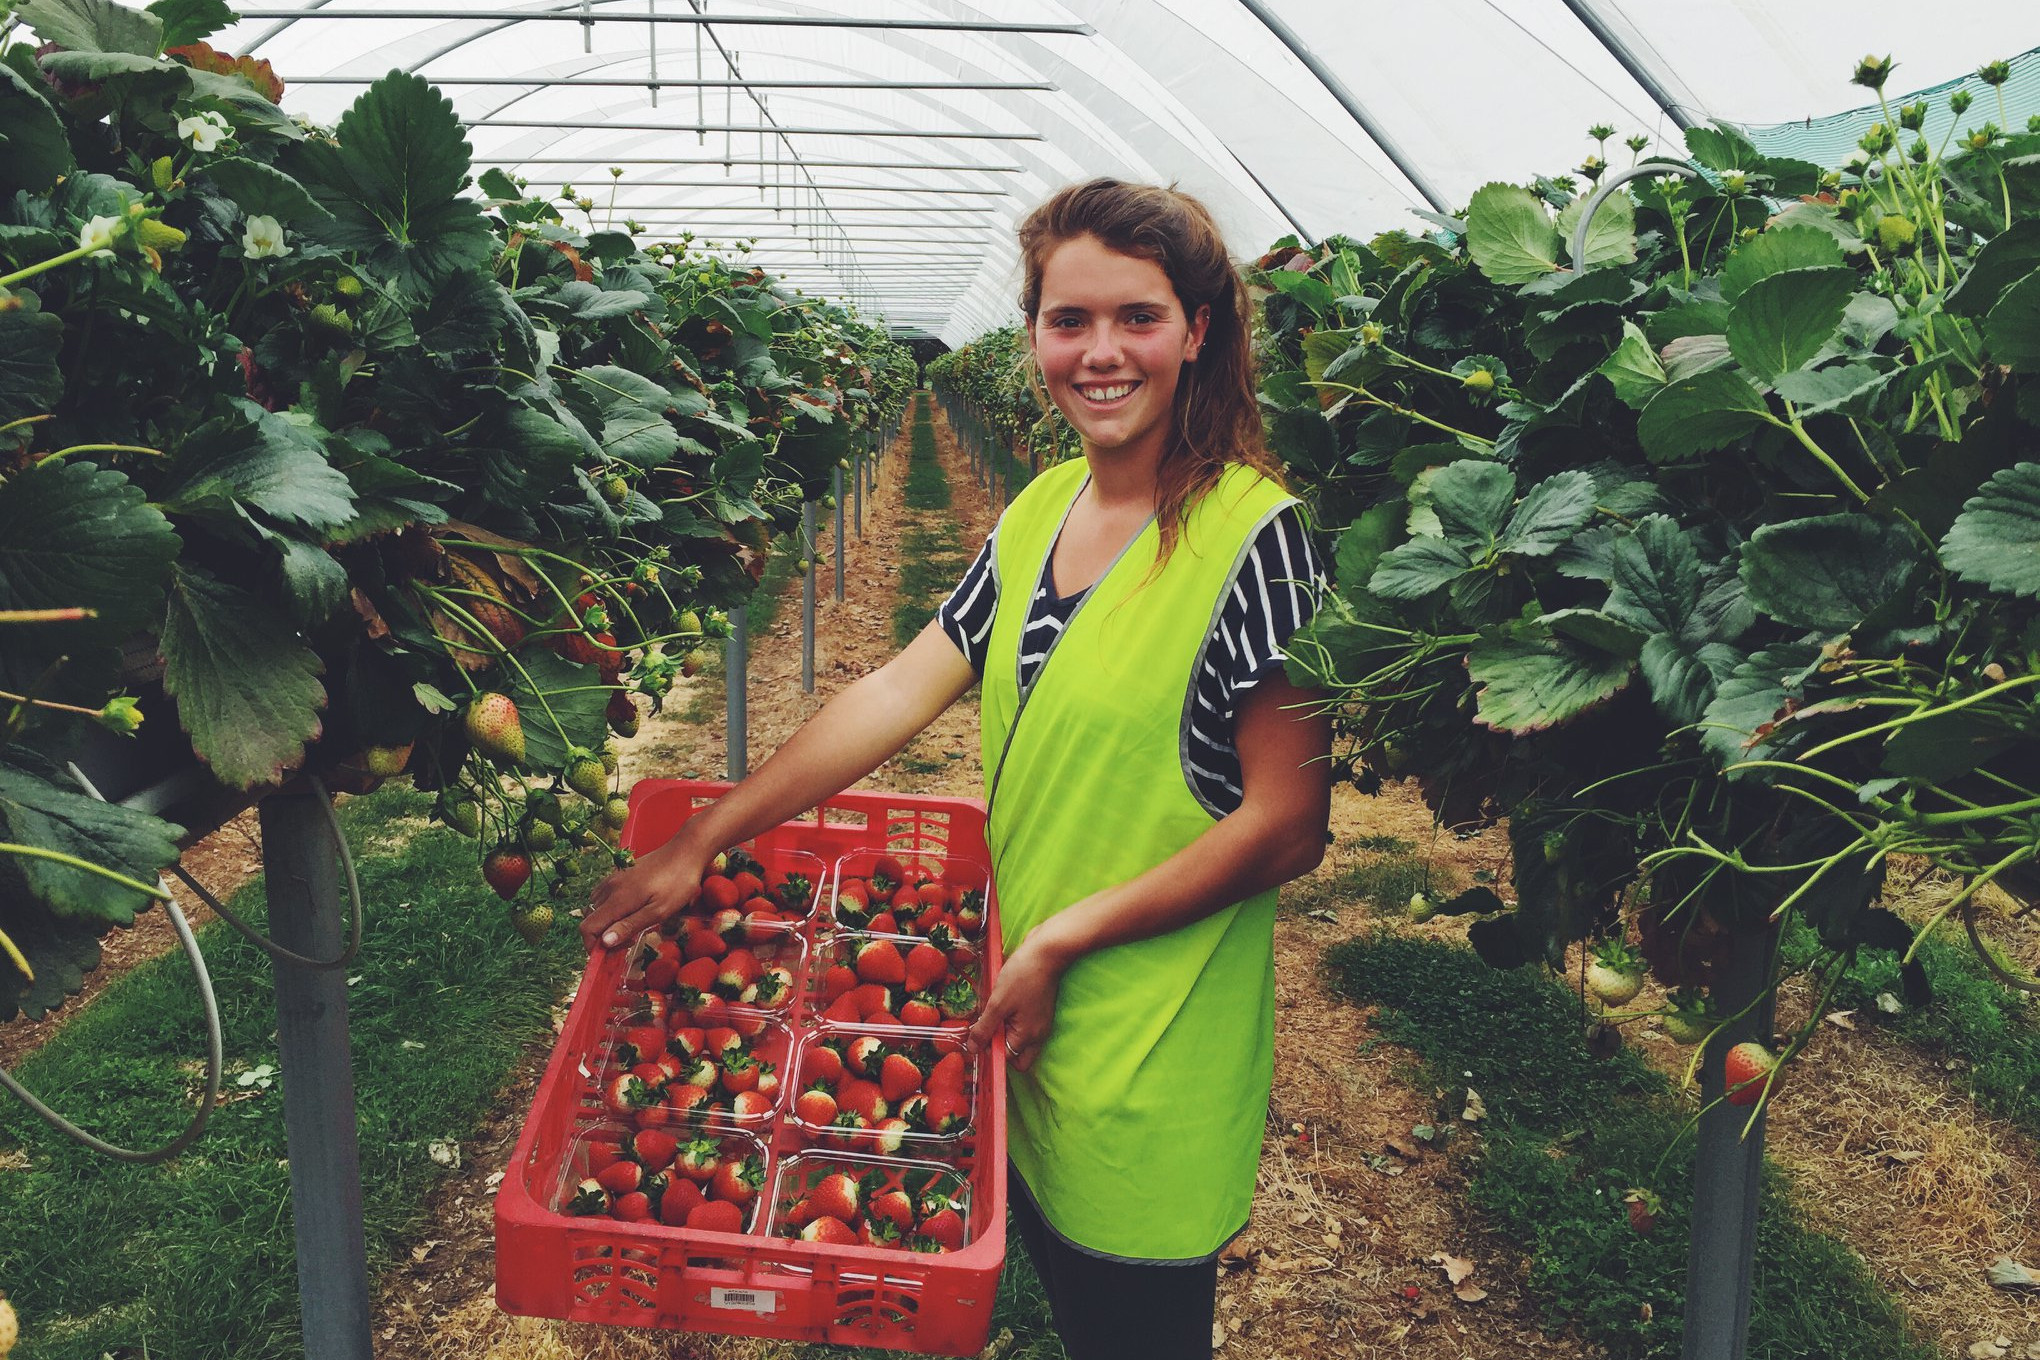 Priscilla, working holiday maker and queen of the strawberries